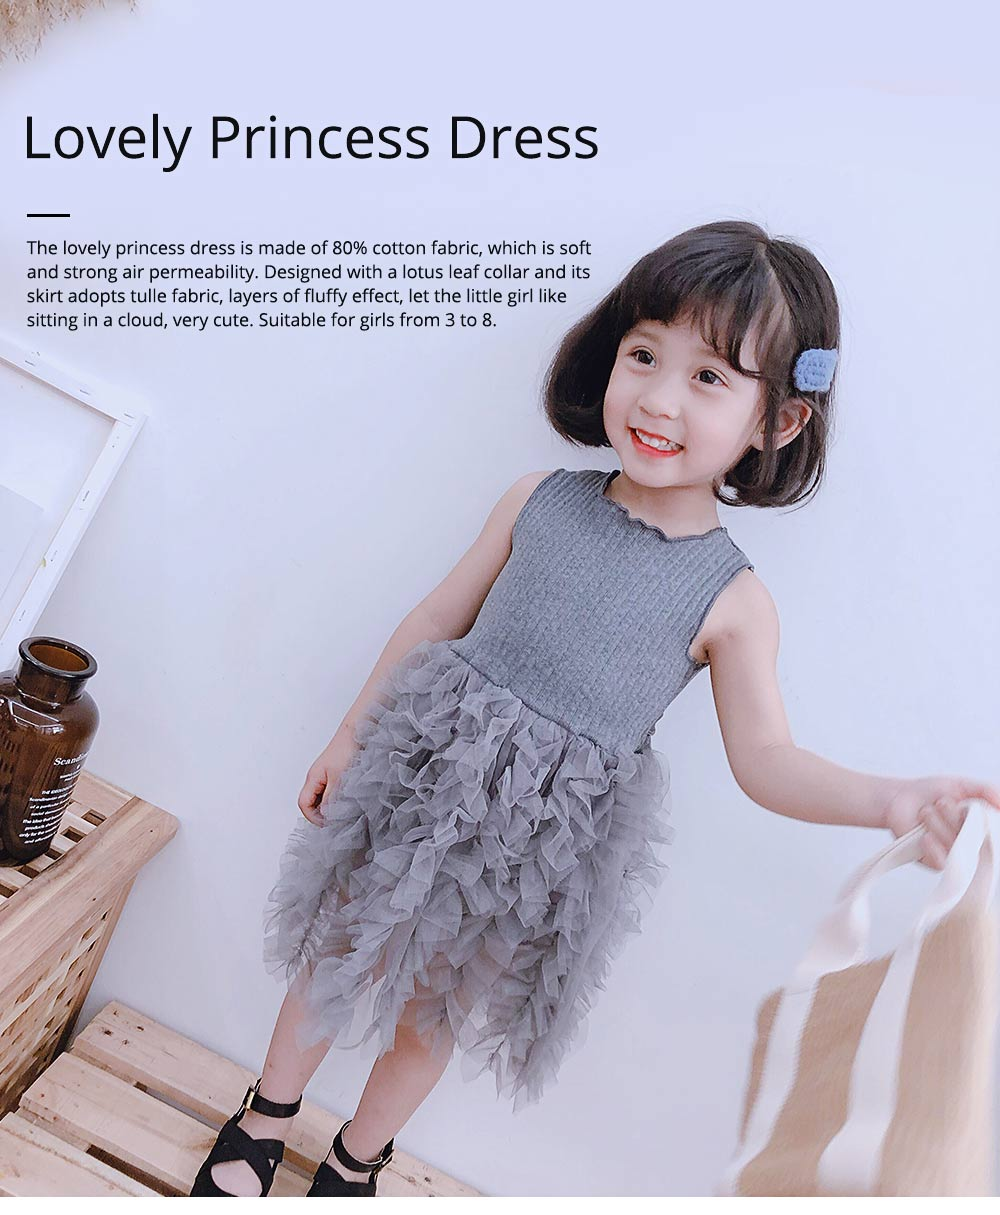 Lovely Princess Dress for Little Girls, Leisure Sleeveless Plain Dress for Girls from 3 to 8 0